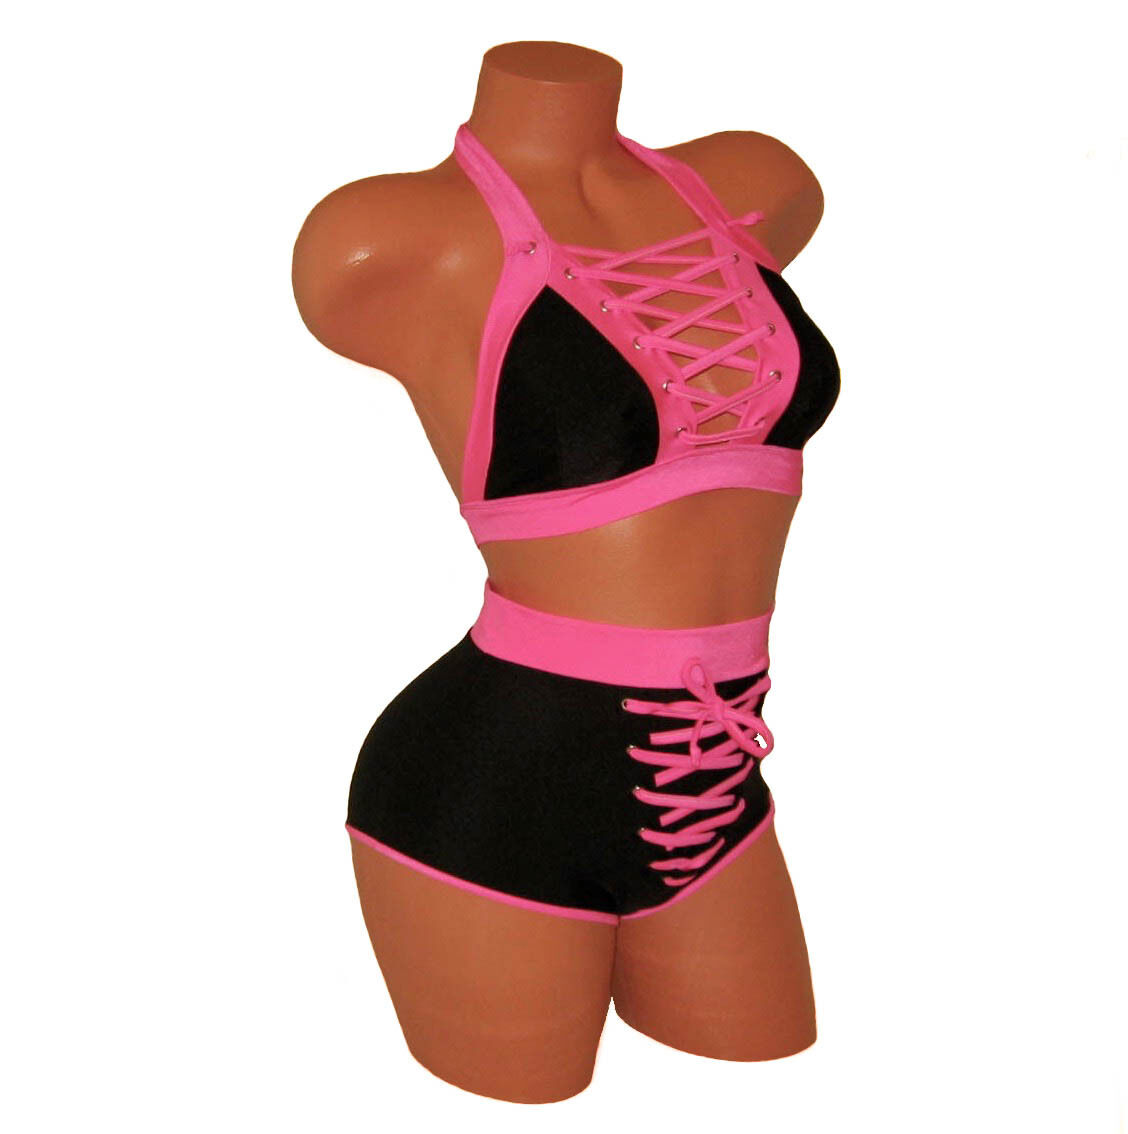 MULTI LACE-UP CROP TOP, HIGH WAISTED SHORTS POLE FITNESS DANCING FESTIVE OUTFIT